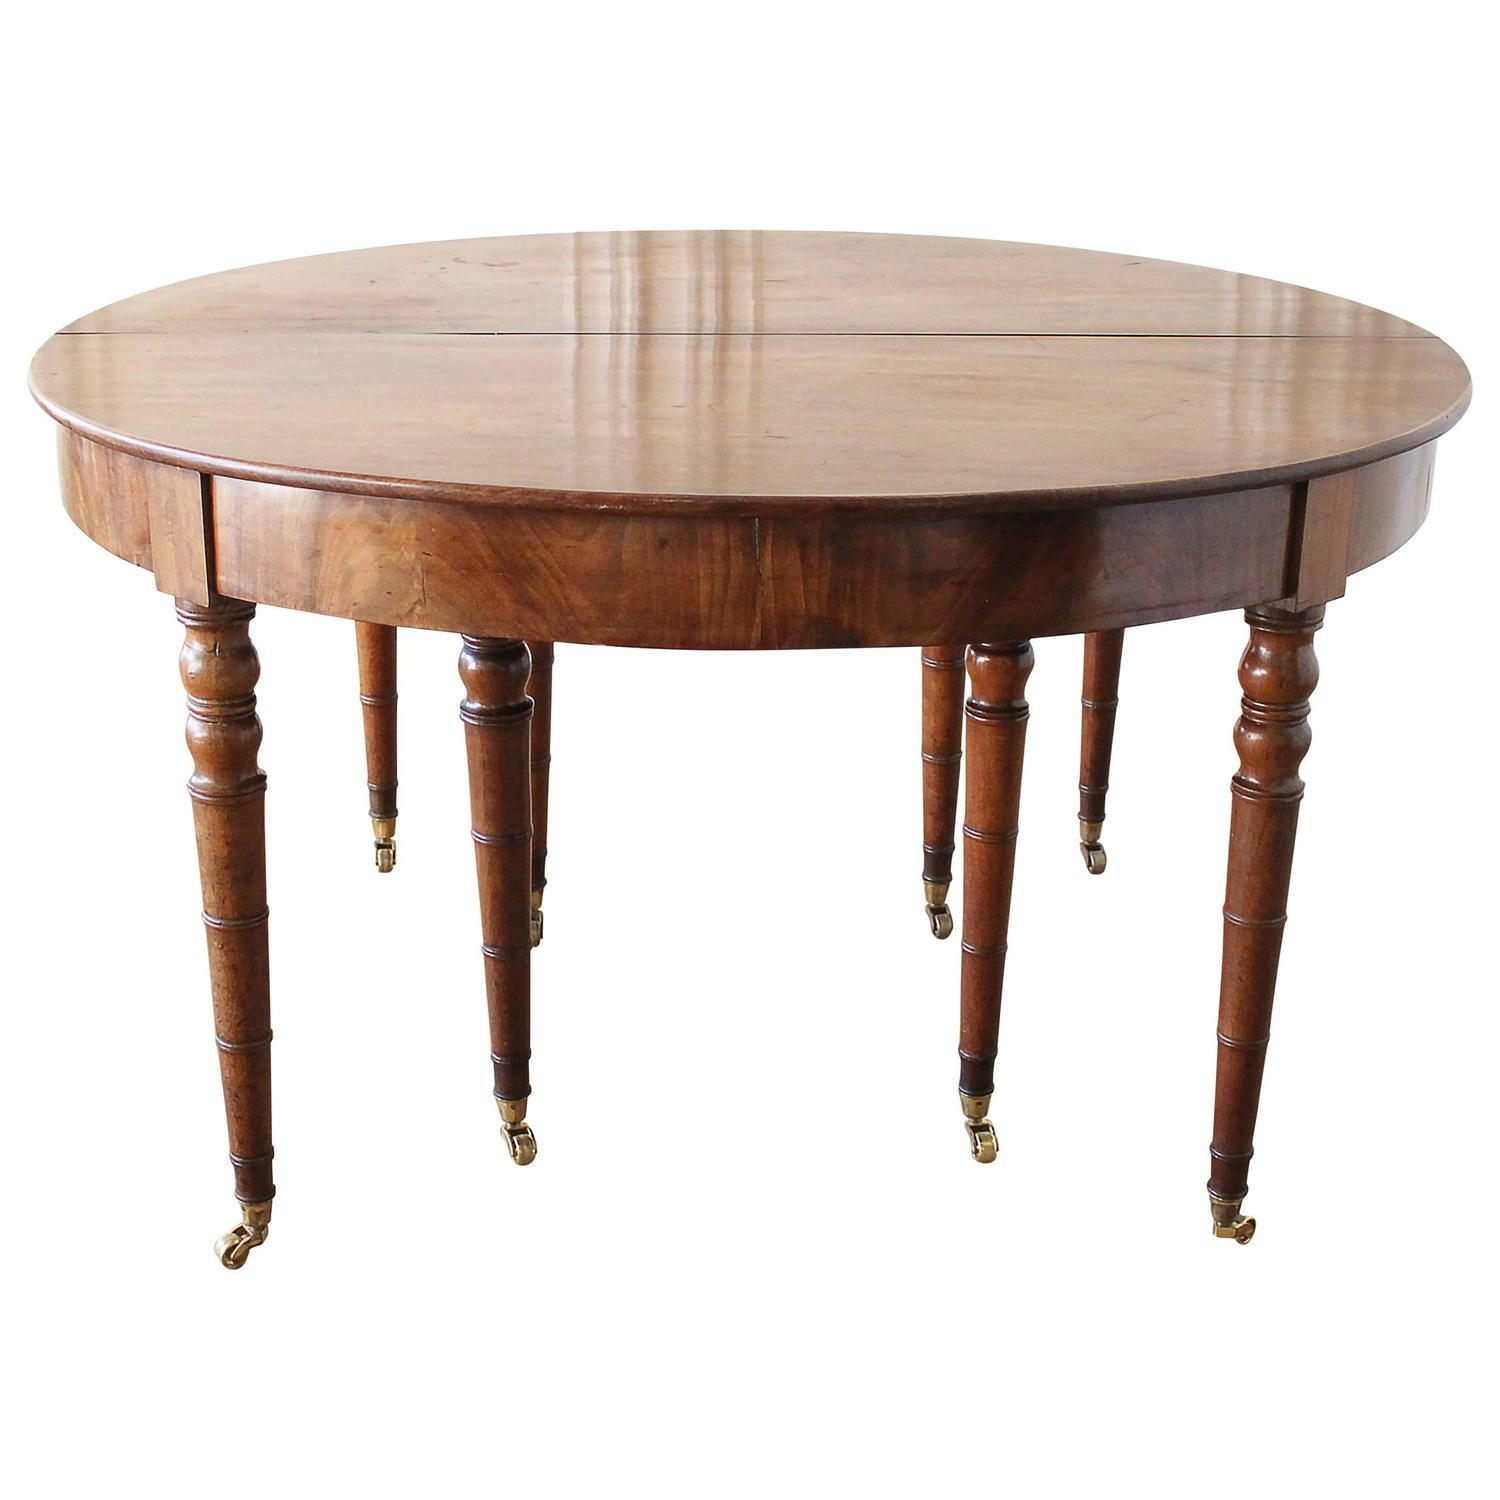 Early 19th Century Dining or Entry Table with eight Legs and